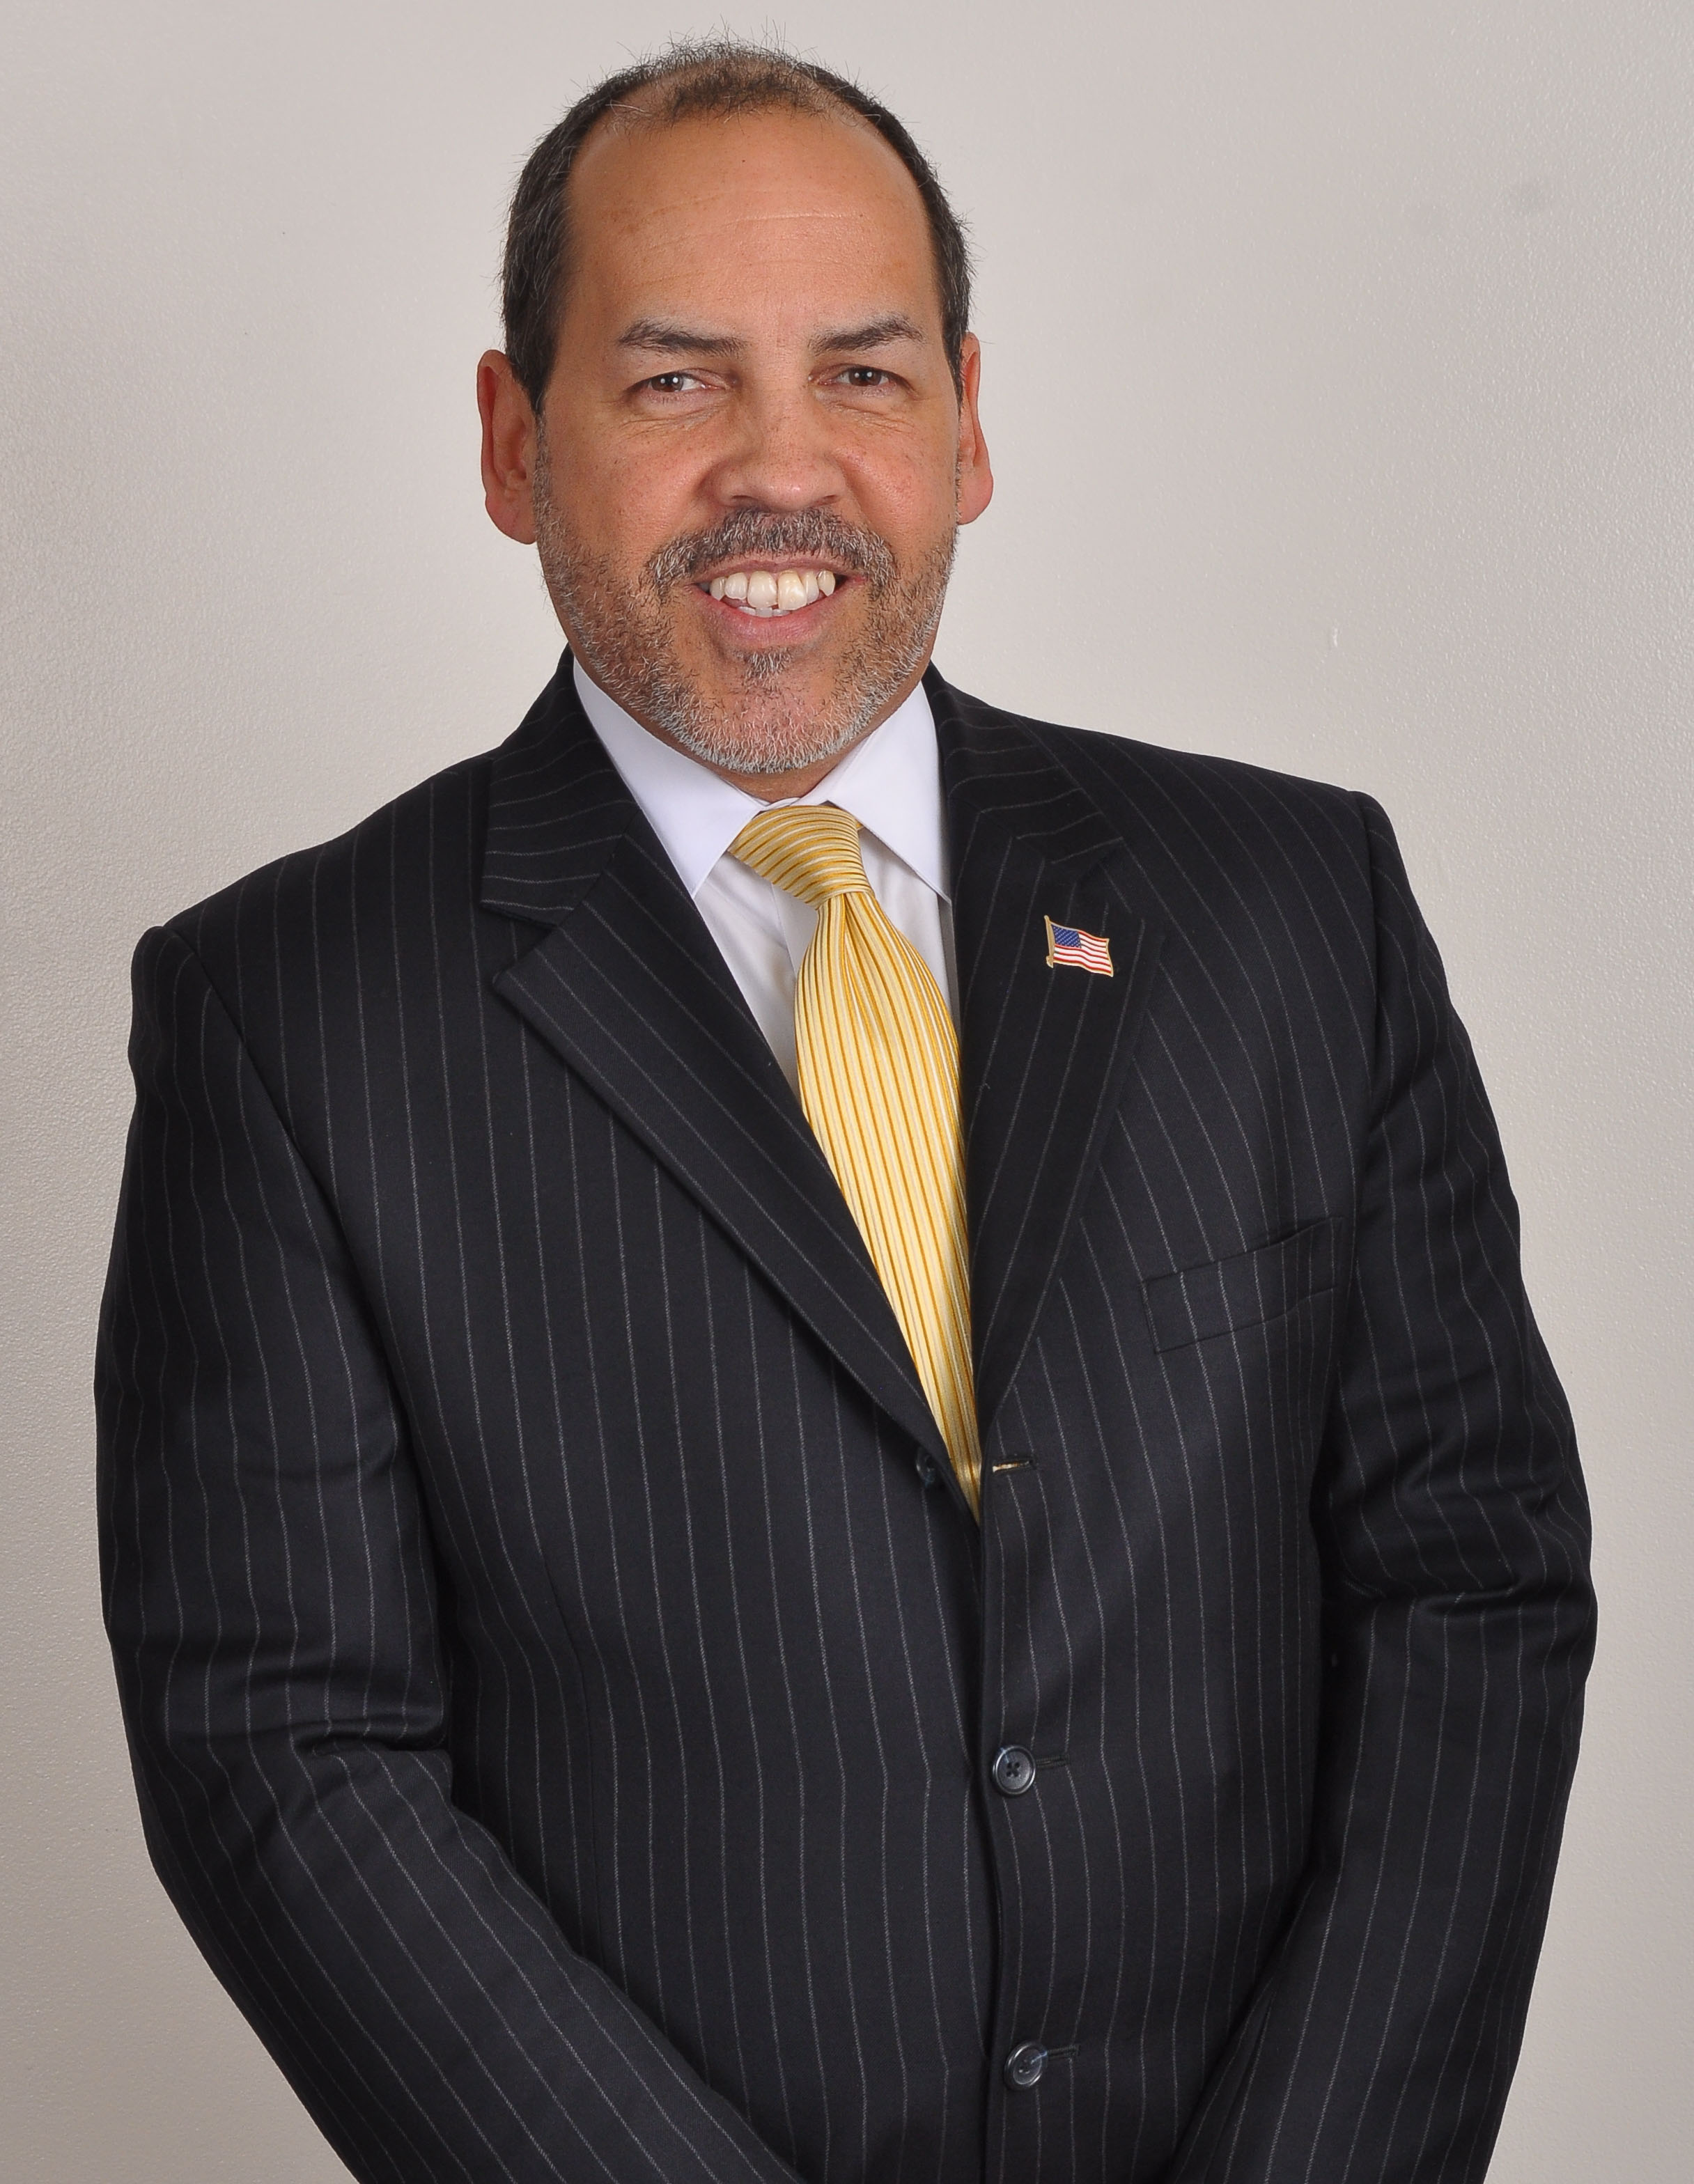 Manny Sarmiento, CEO of Doral Chamber of Commerce.